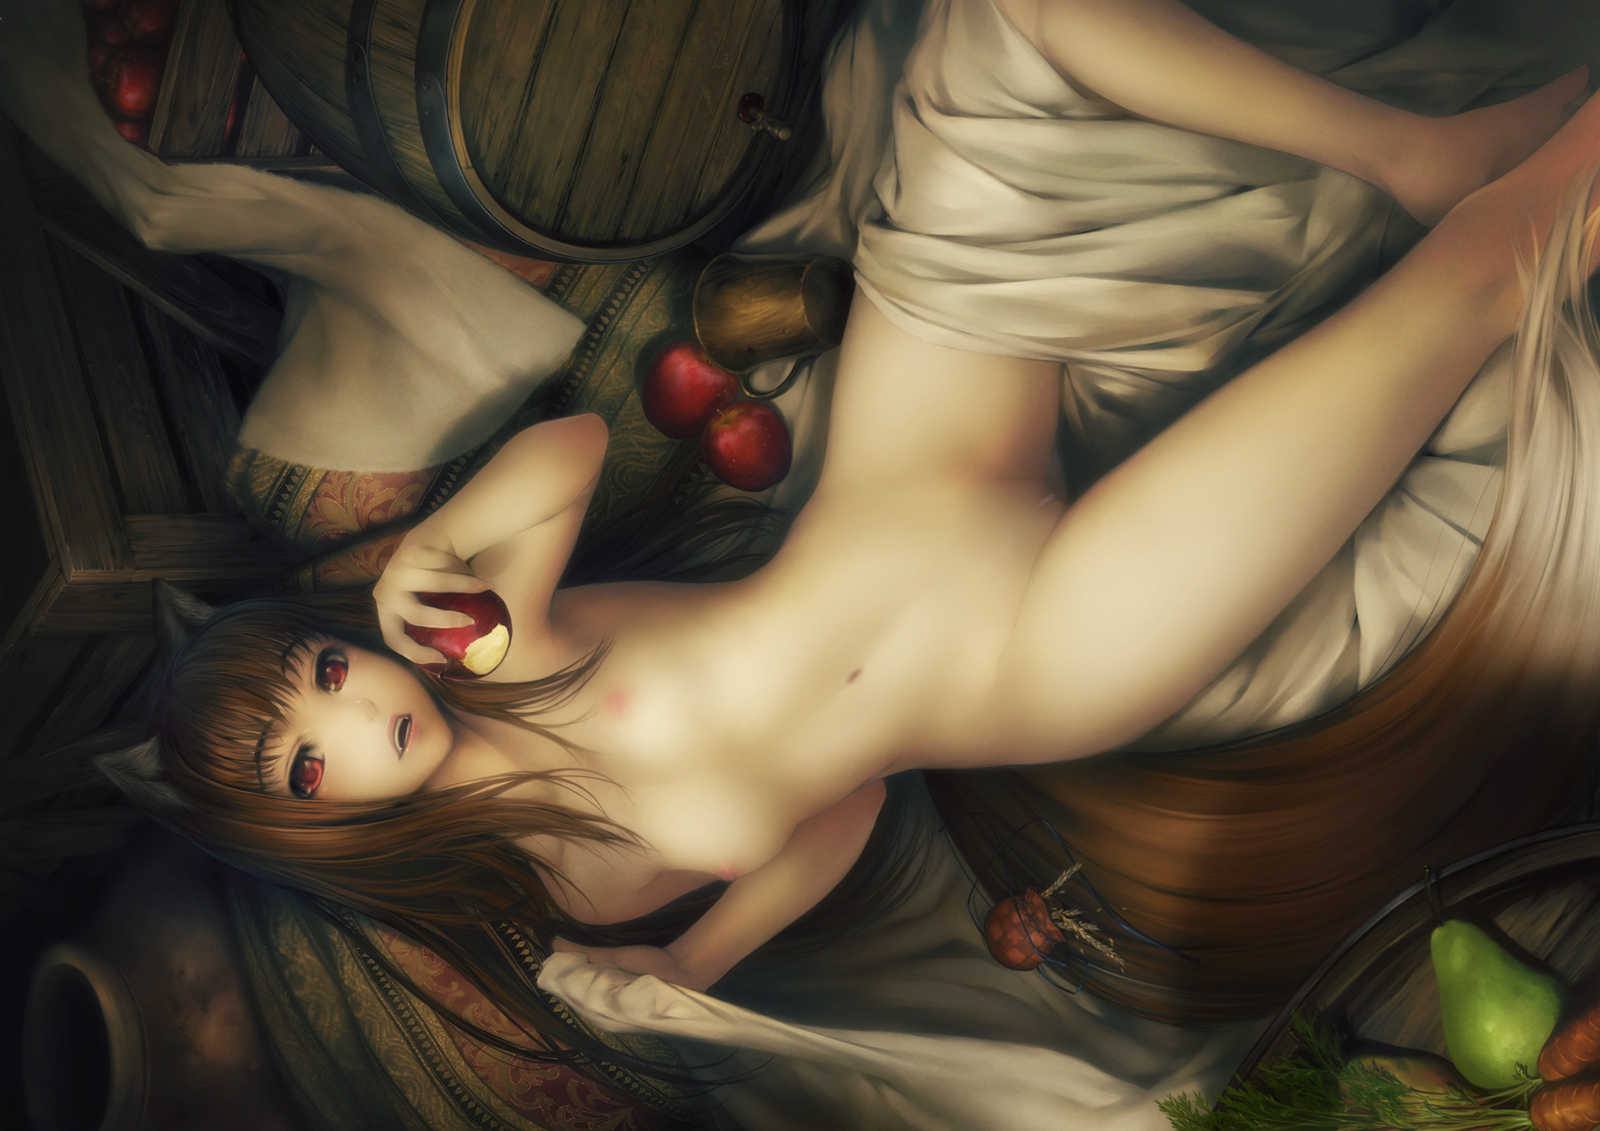 animal ears apple breasts brown hair food fruit horo long hair navel nipples nude ookami to koushinryou photoshop pussy red eyes simosi tail uncensored wolfgirl